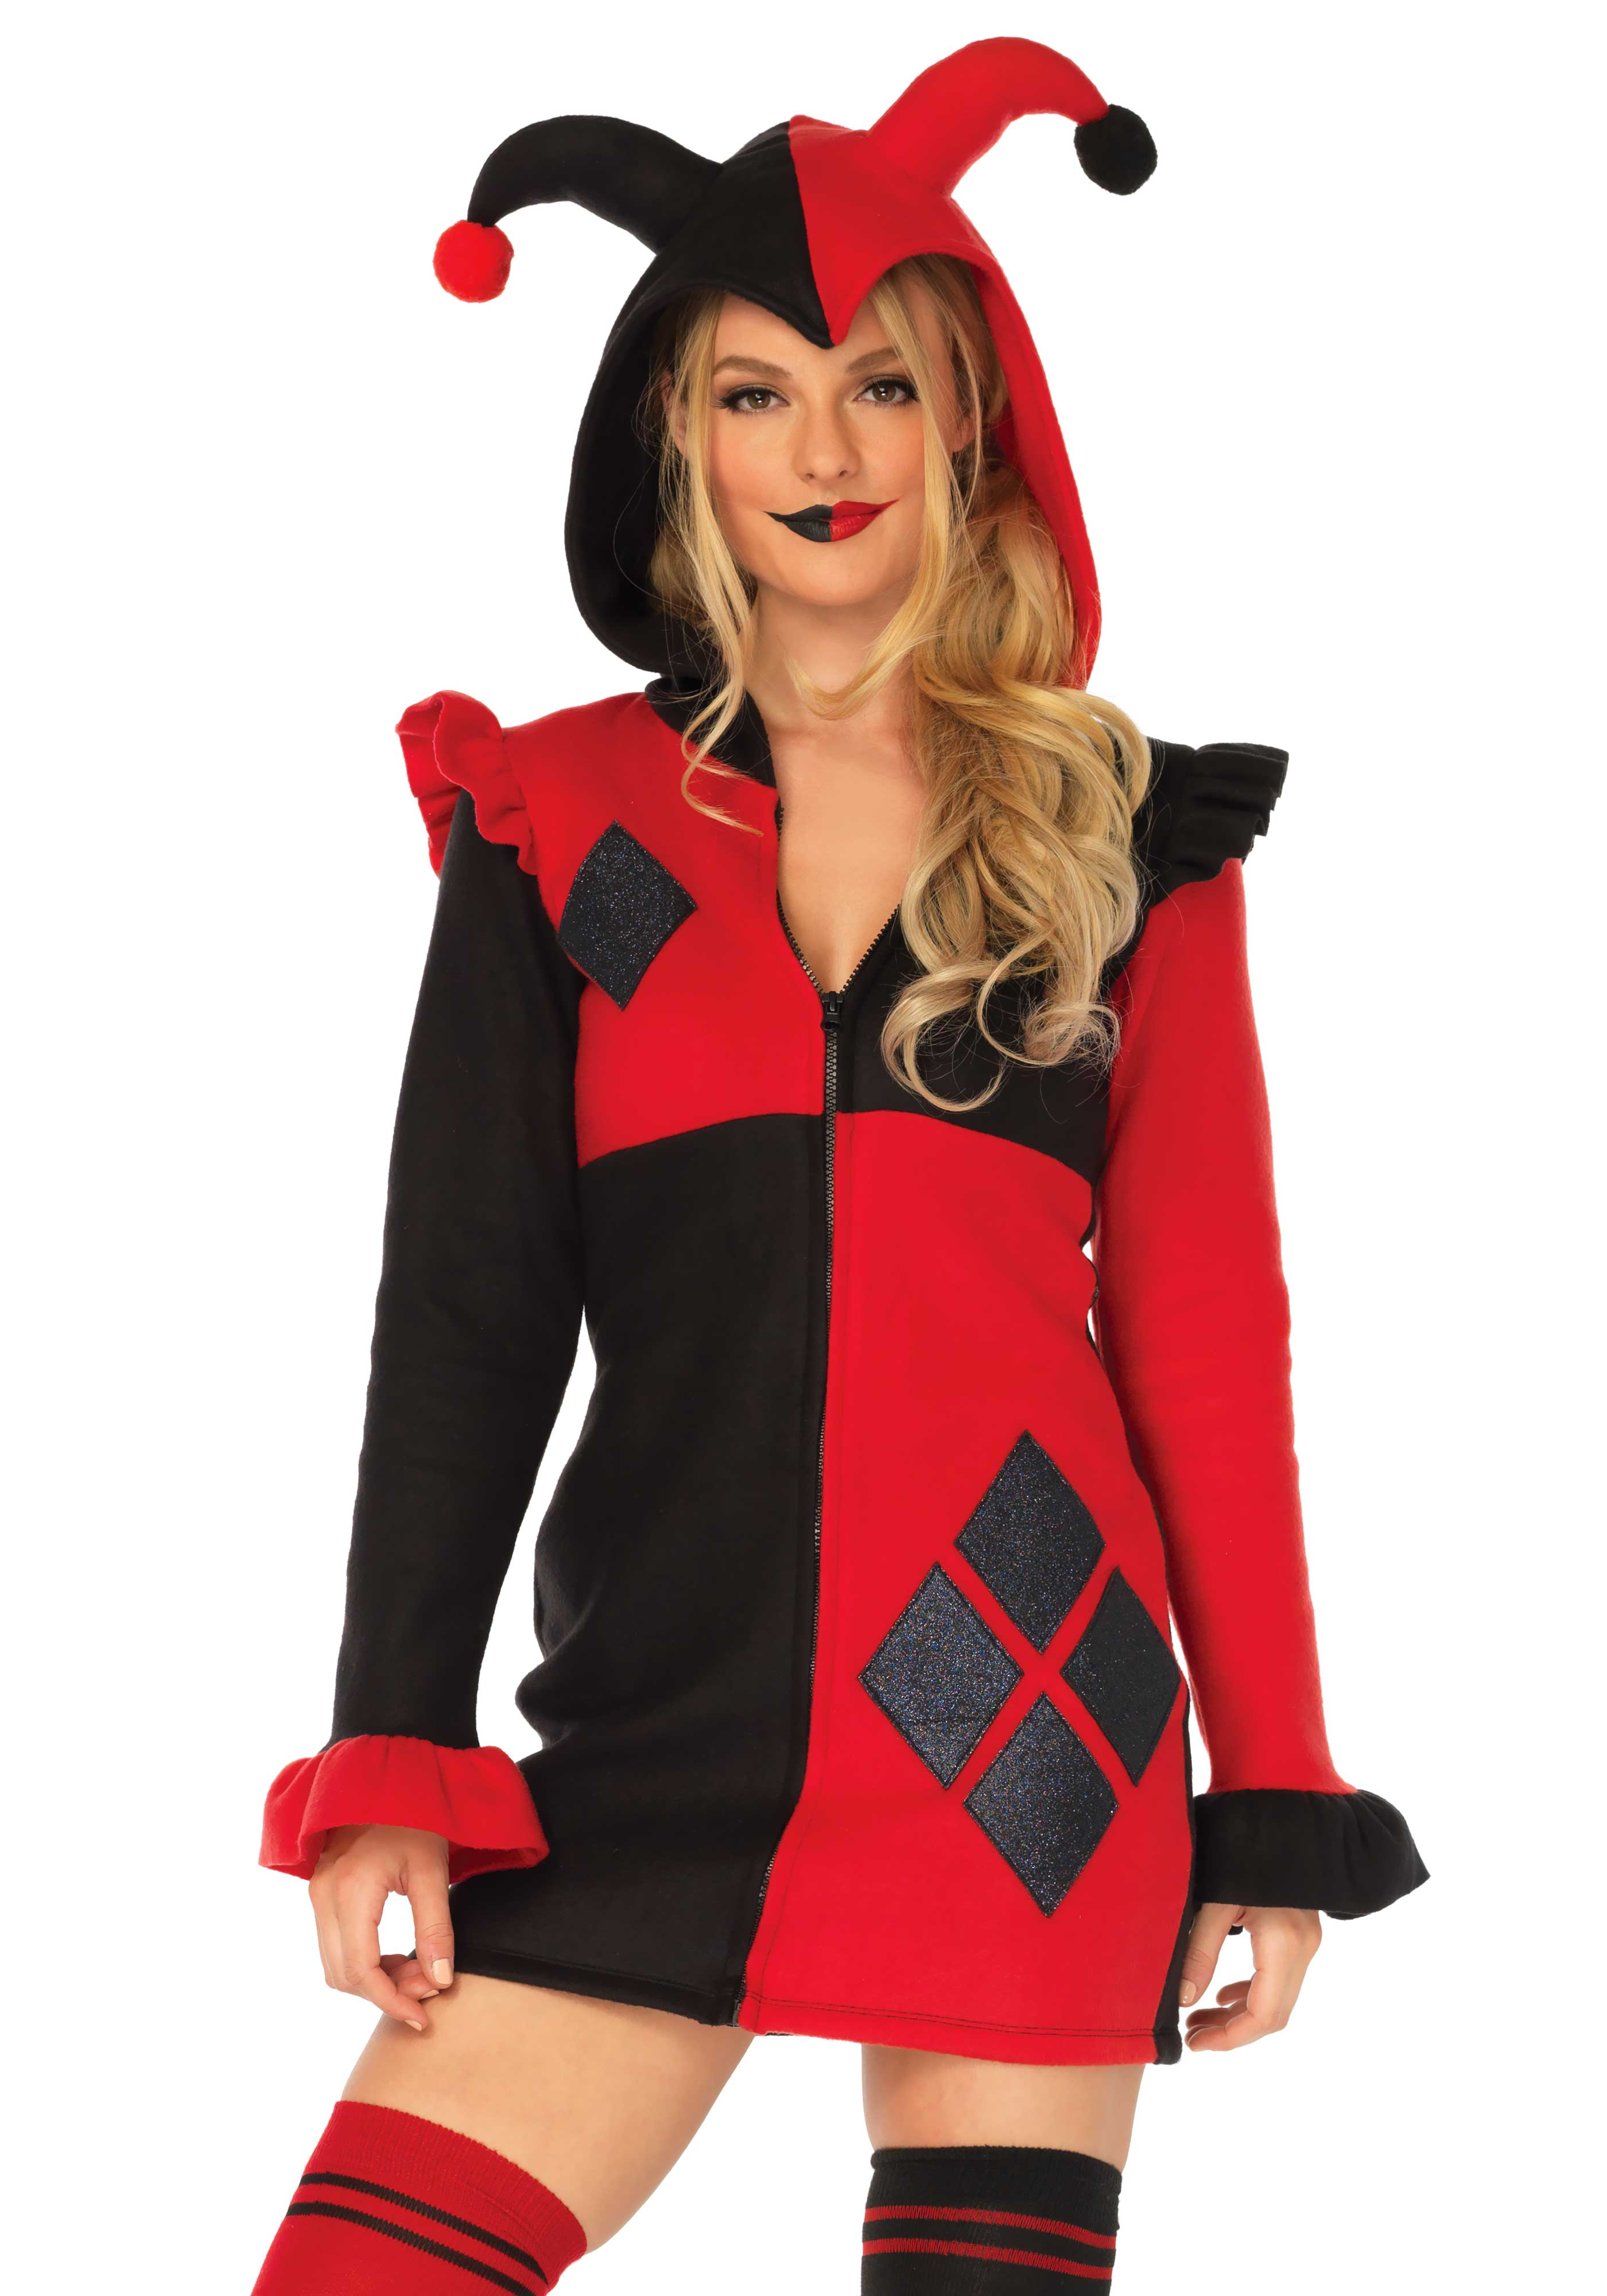 Harlequin cosy fleece costume, includes a zipper front fleece dress with shiny diamond accents, ruffle shoulder accents and harlequin horn hood.